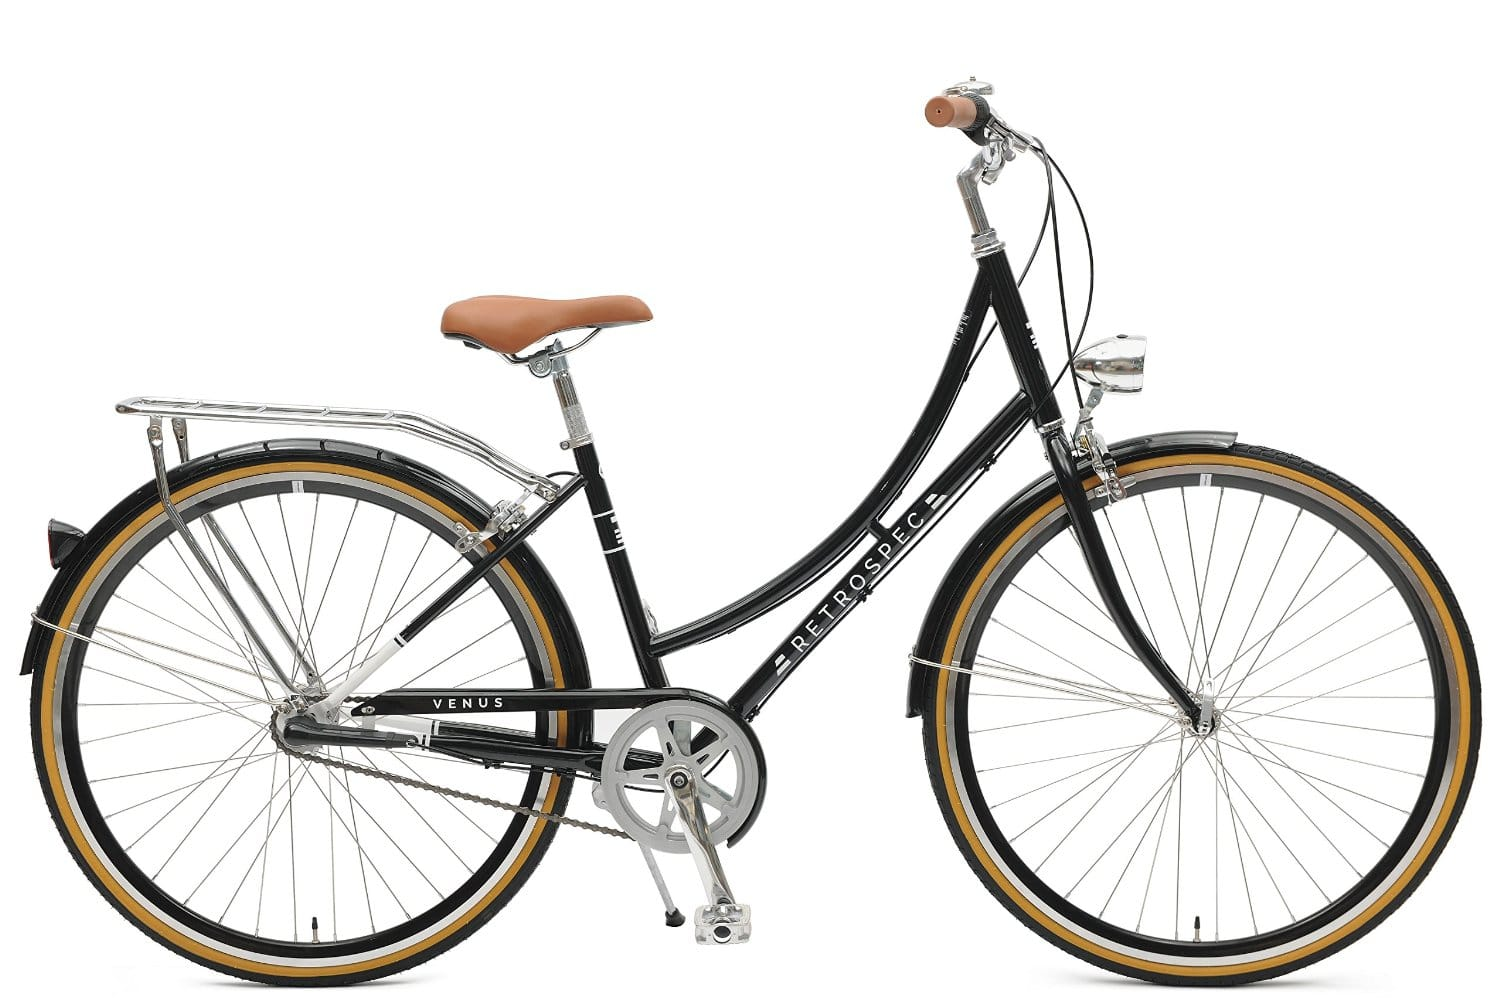 IRetrospec Venus Dutch Step-Thru City Comfort Hybrid Bike